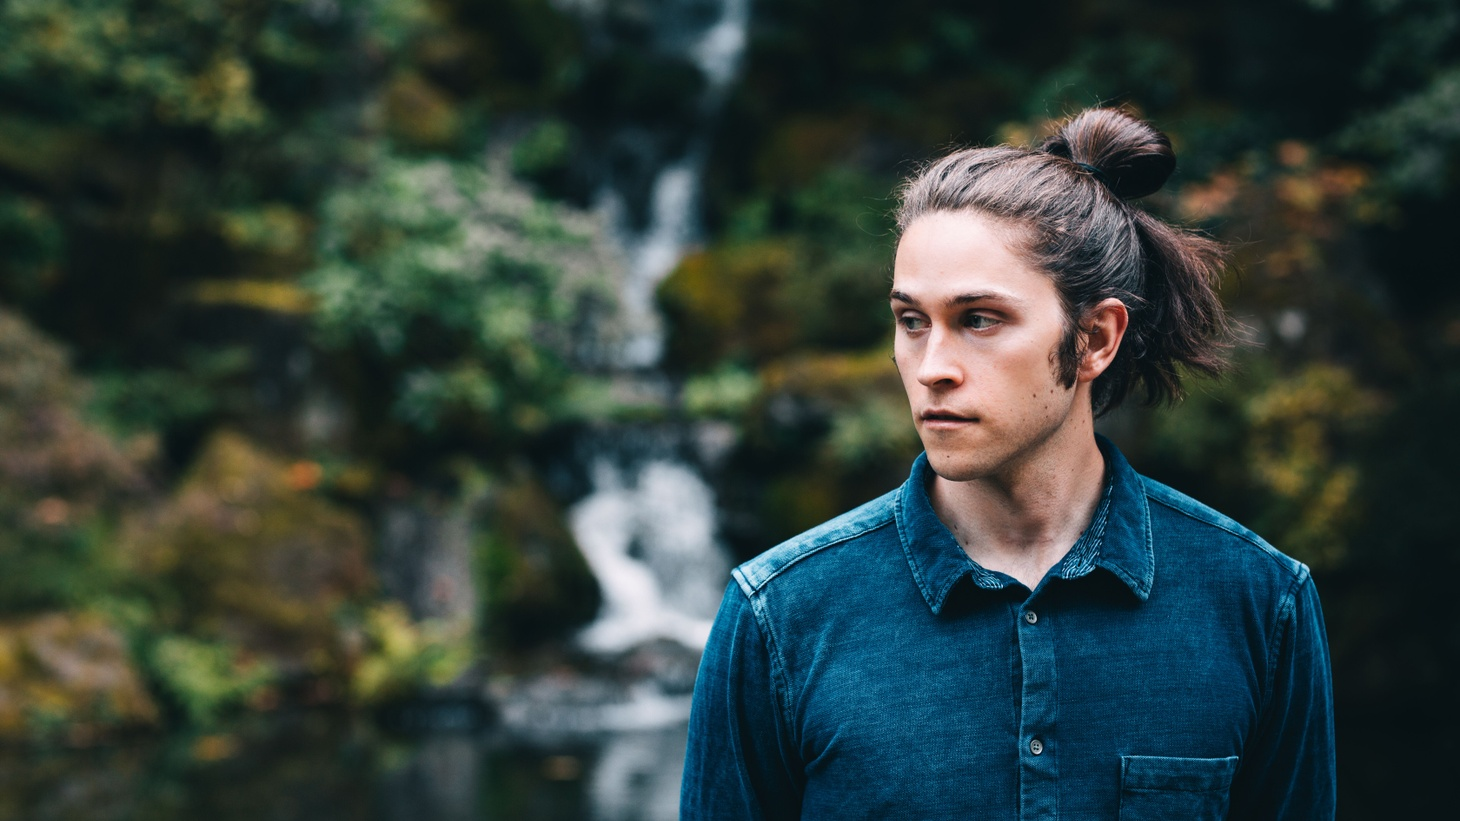 Jackson Stell has been creating and producing music as Big Wild since 2012. His latest album Superdream grabbed our attention early on with it's dance and electronic beats.